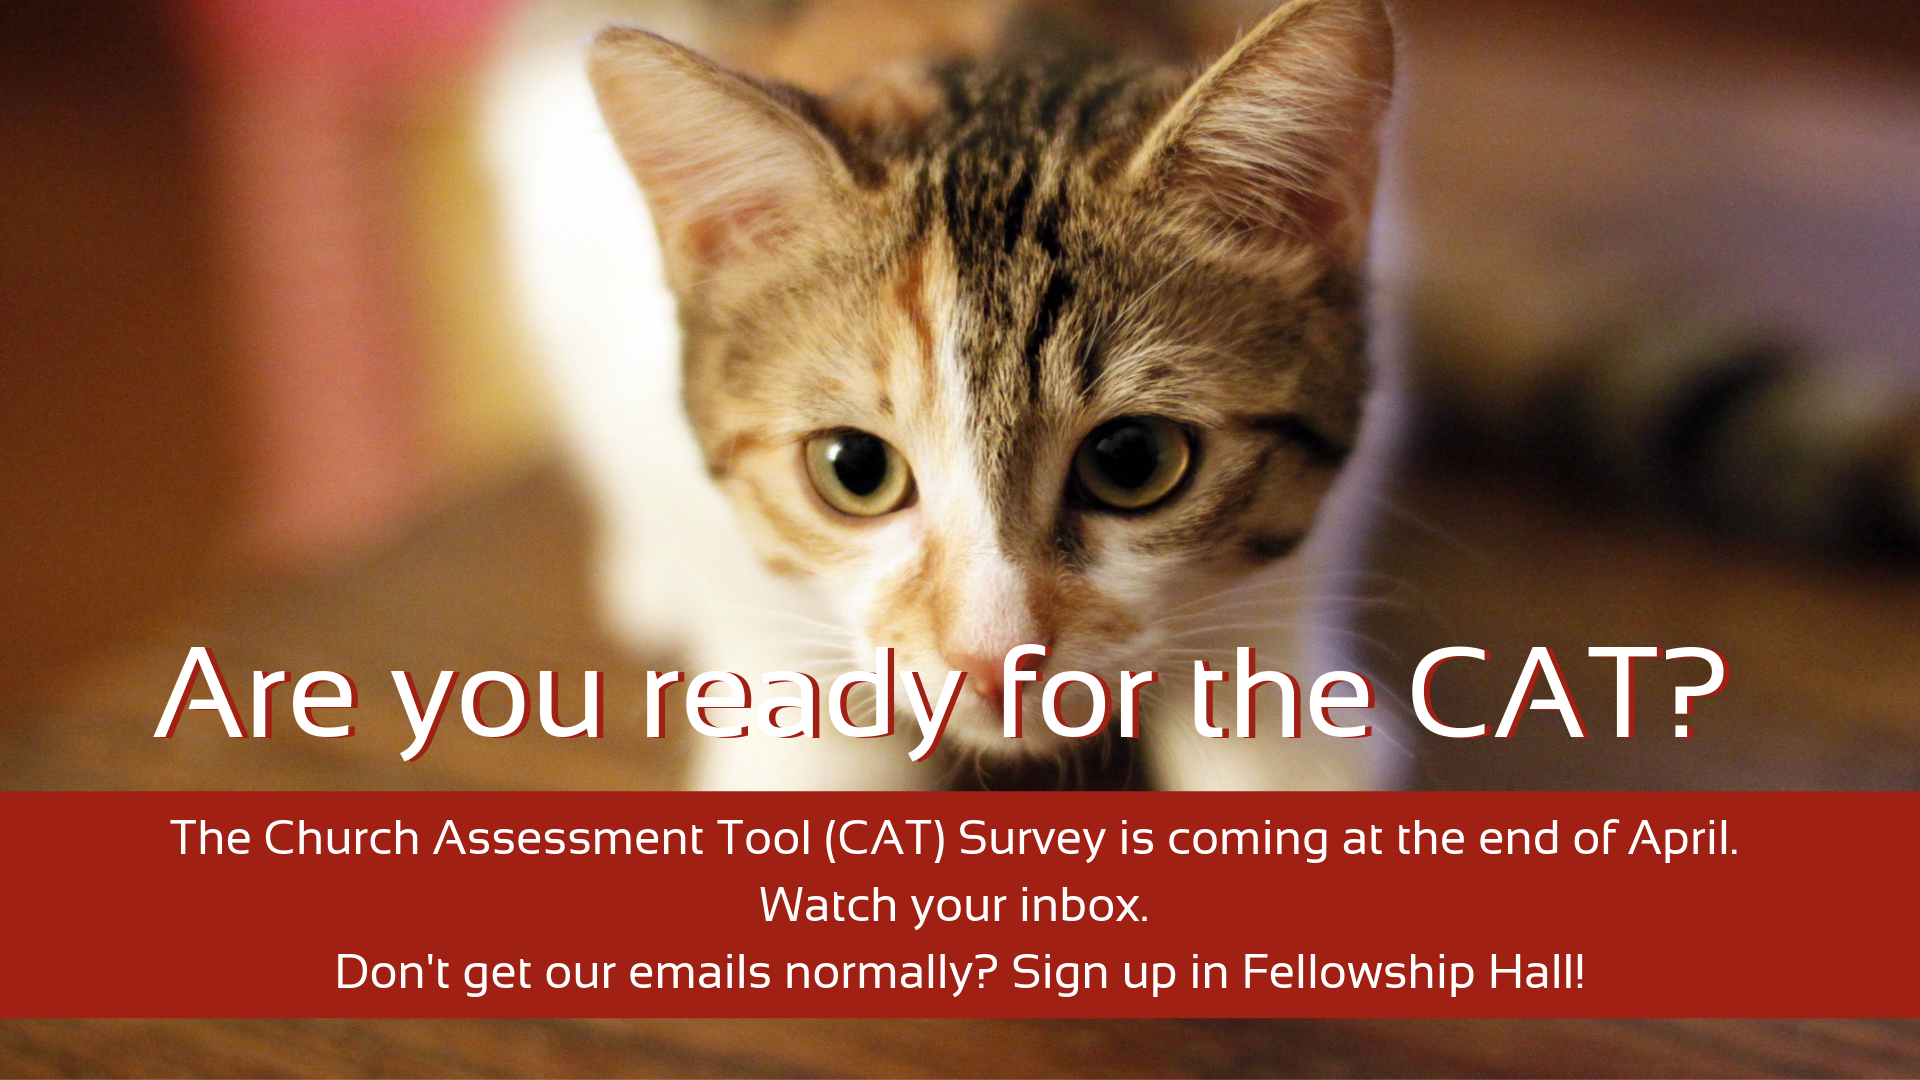 We'll be doing a survey coming up called the Church Assessment Tool or CAT for short. If you're receiving this email, you'll receive a link to complete the survey on/after April 28th.  Please watch your inbox & take the time necessary to complete the survey. You'll help our church discern the next steps for our future (we're using this tool as a precursor for one of our fall series about visioning).